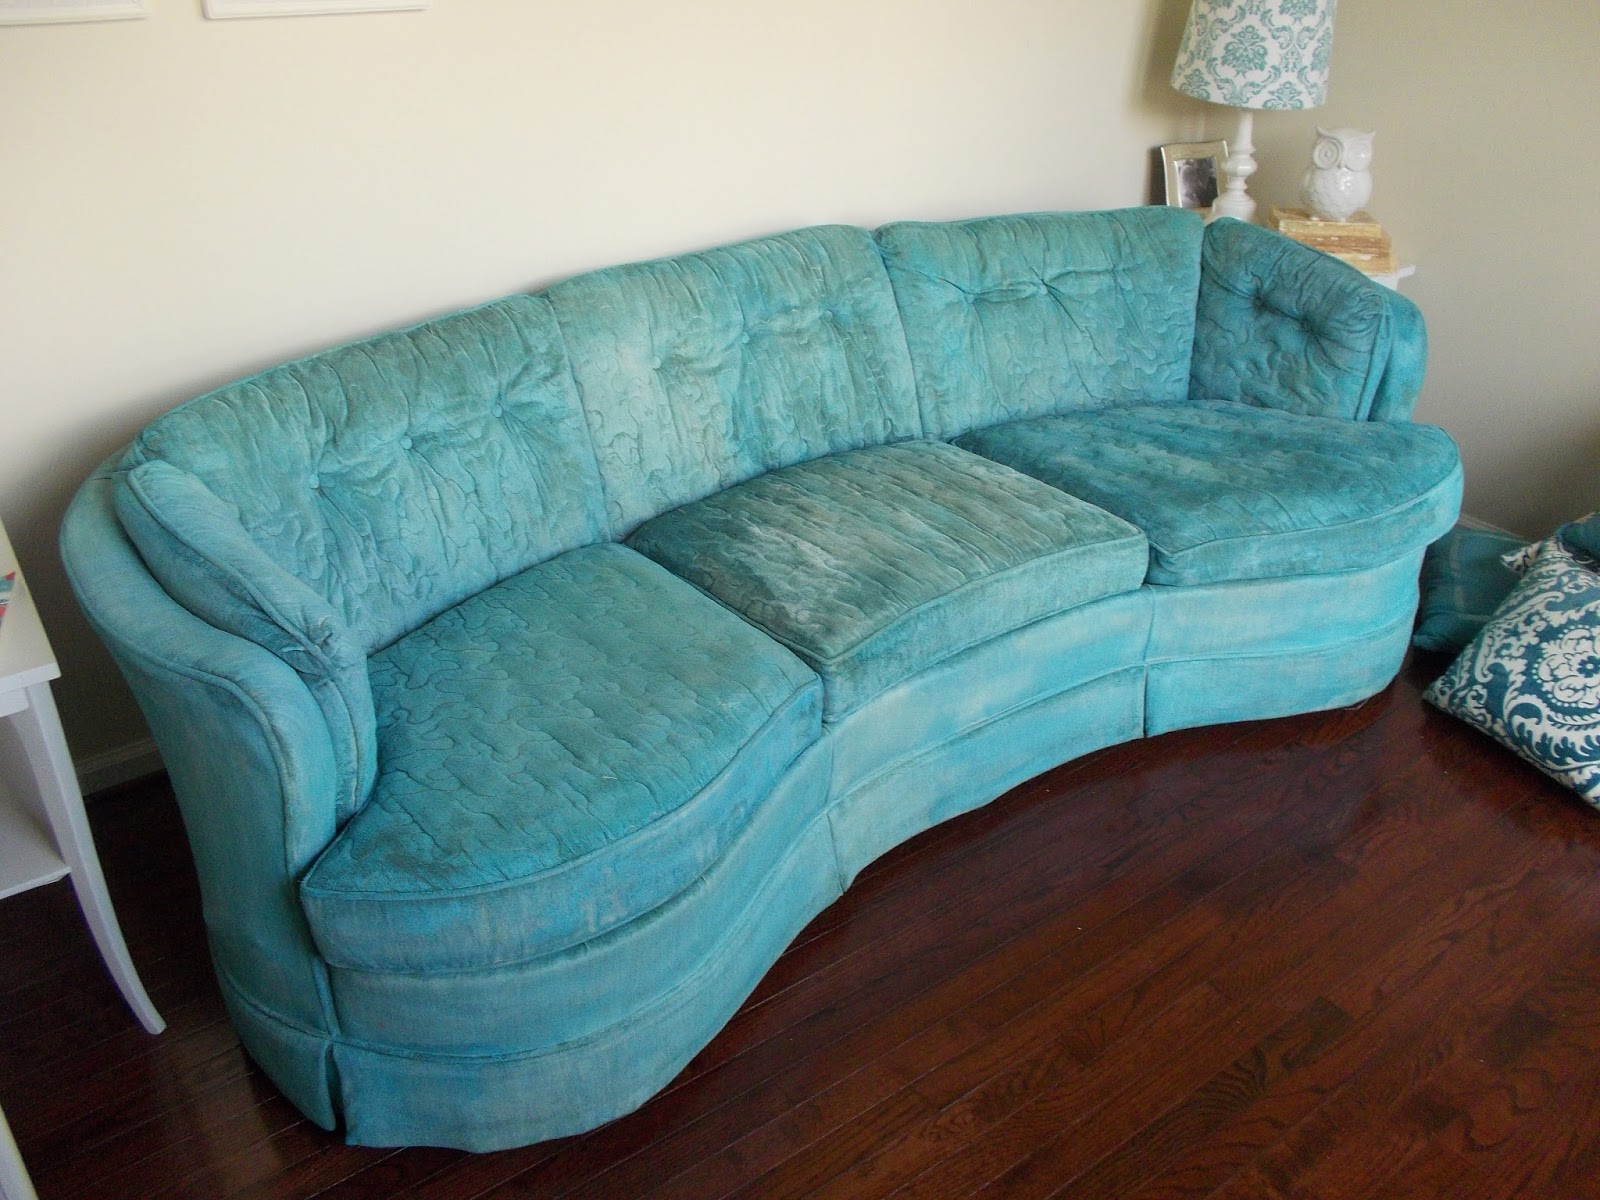 Couches Sale Near Me